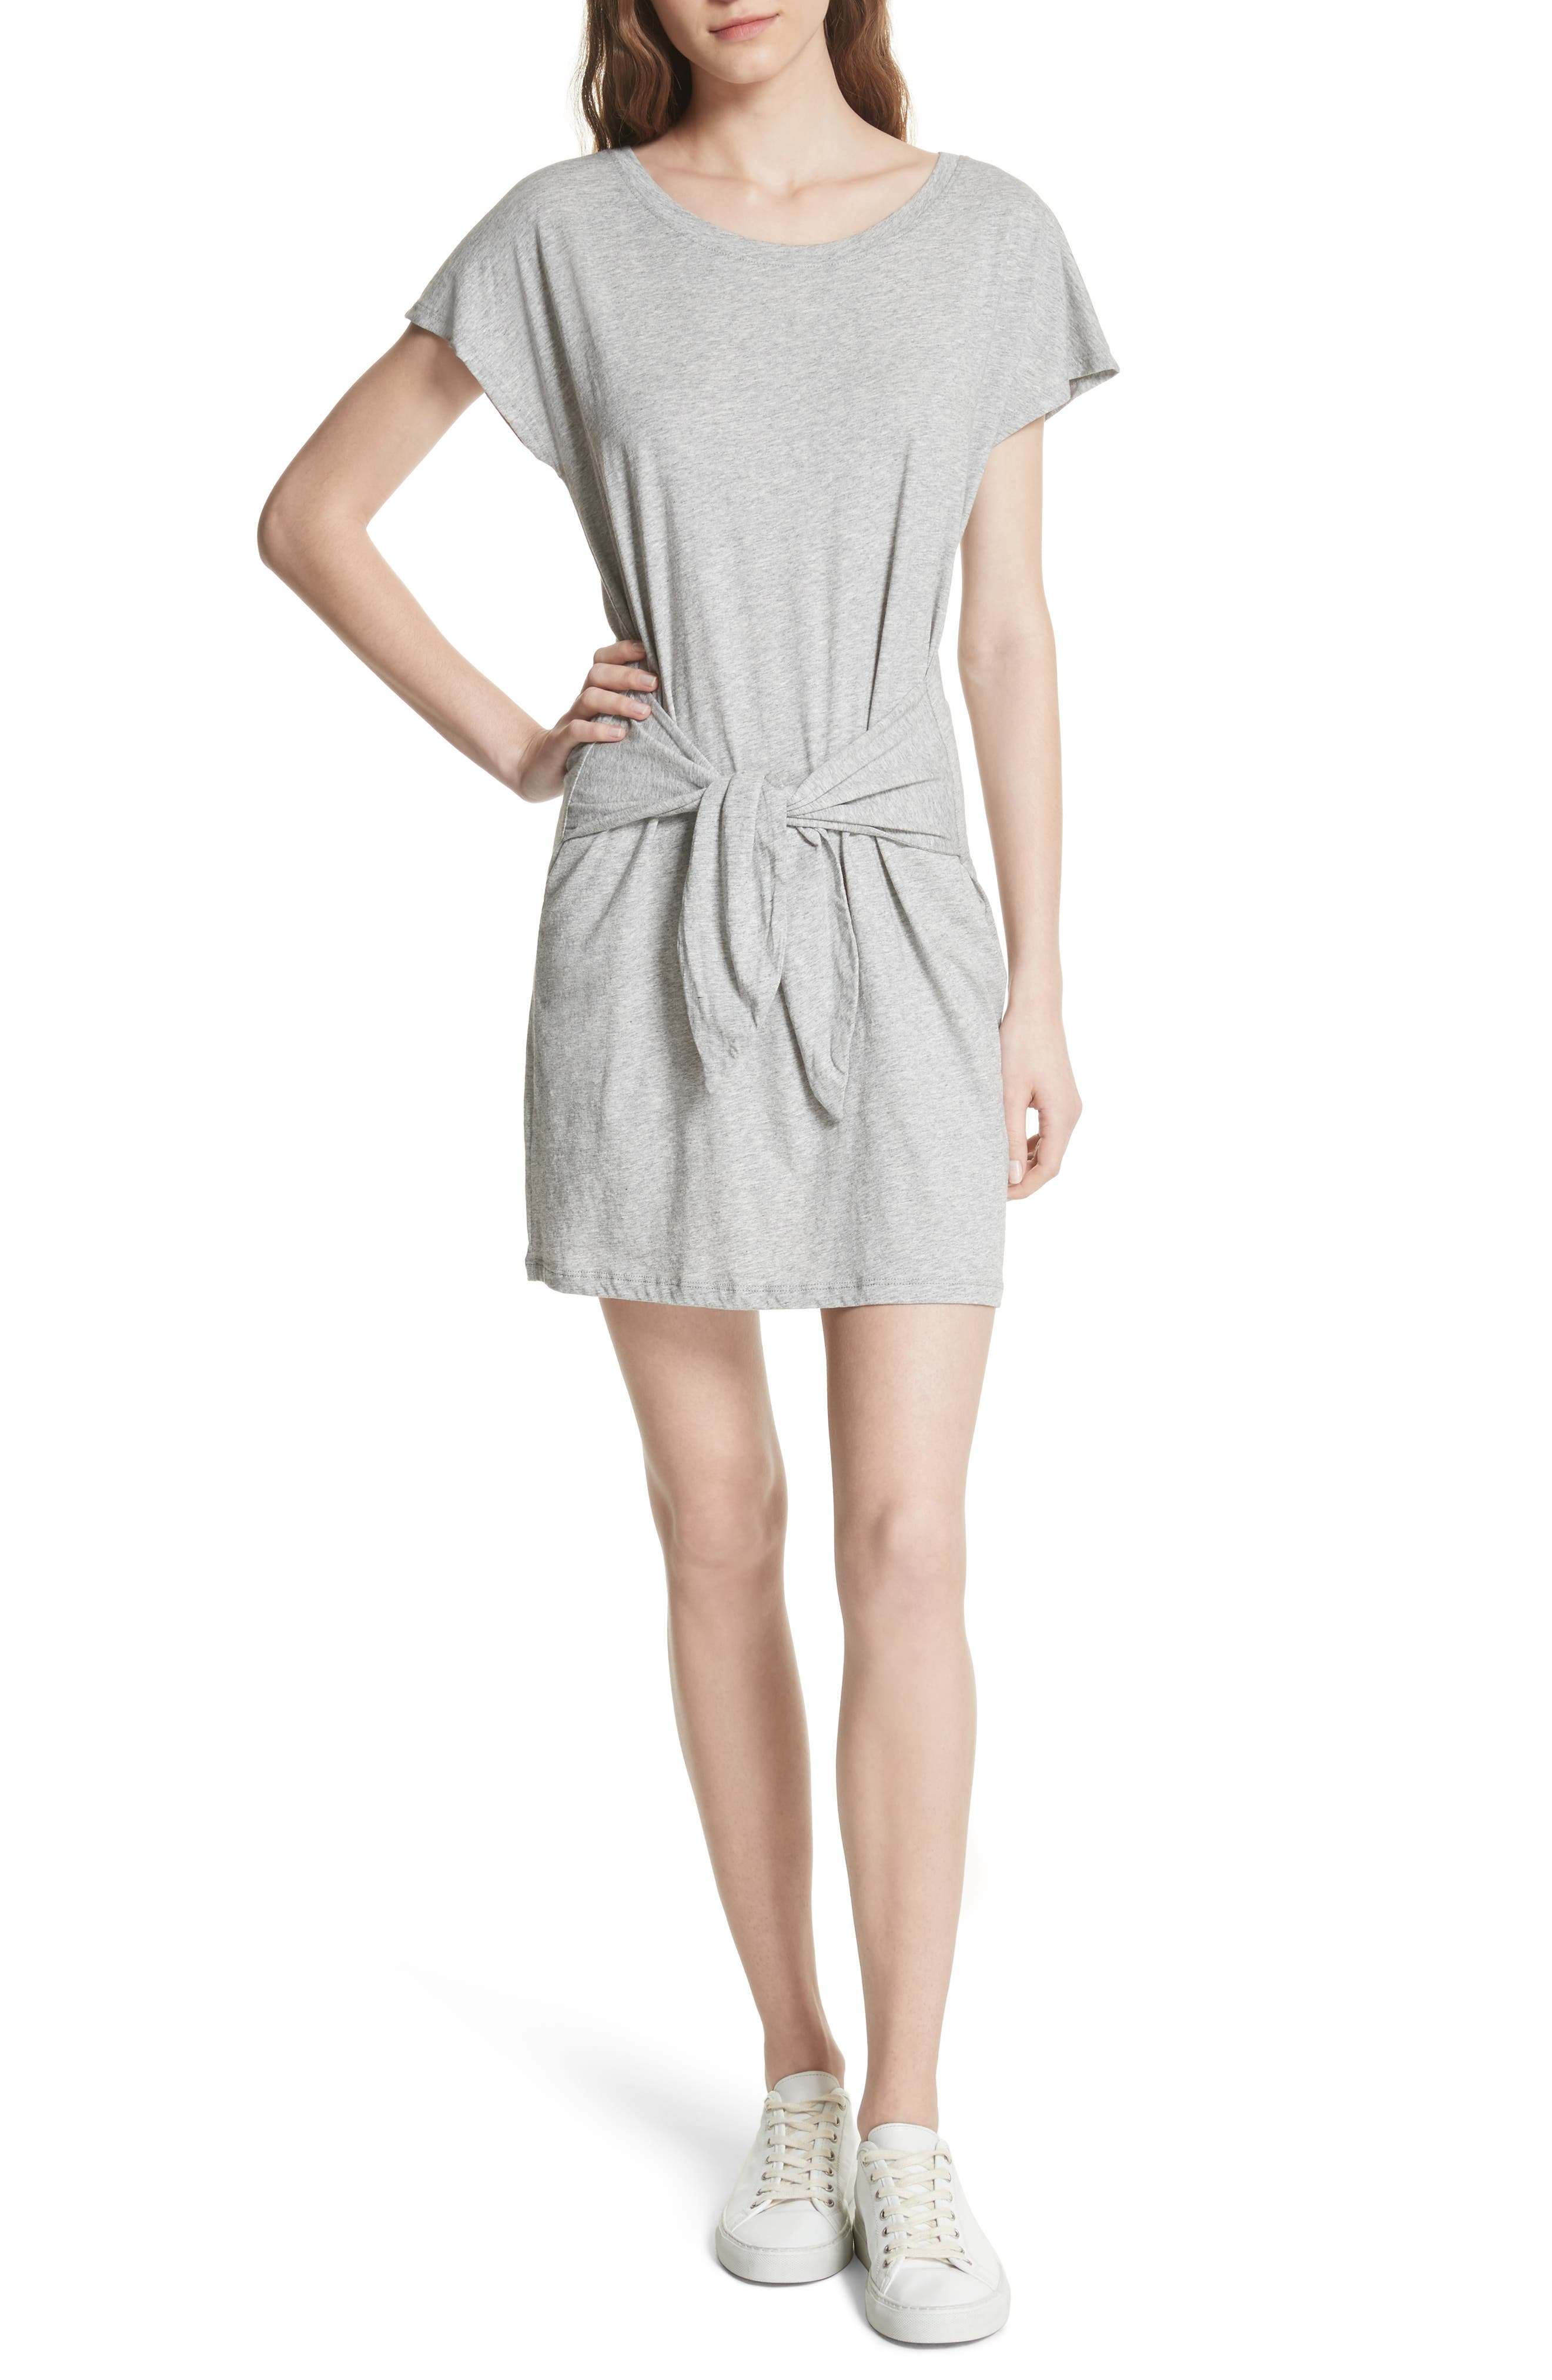 Alyra Tie Waist Cotton T-Shirt Dress,                         Main,                         color, Heather Grey